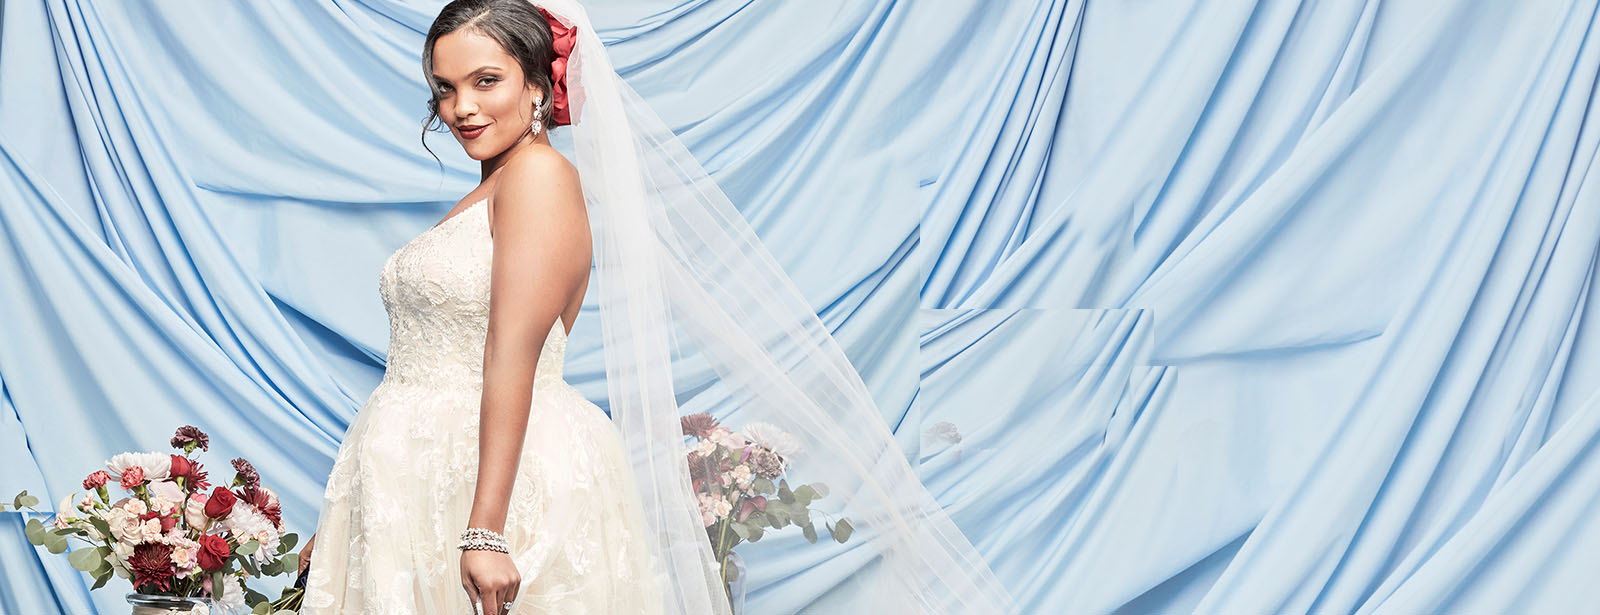 bride wearing strapless oleg cassini wedding gown.